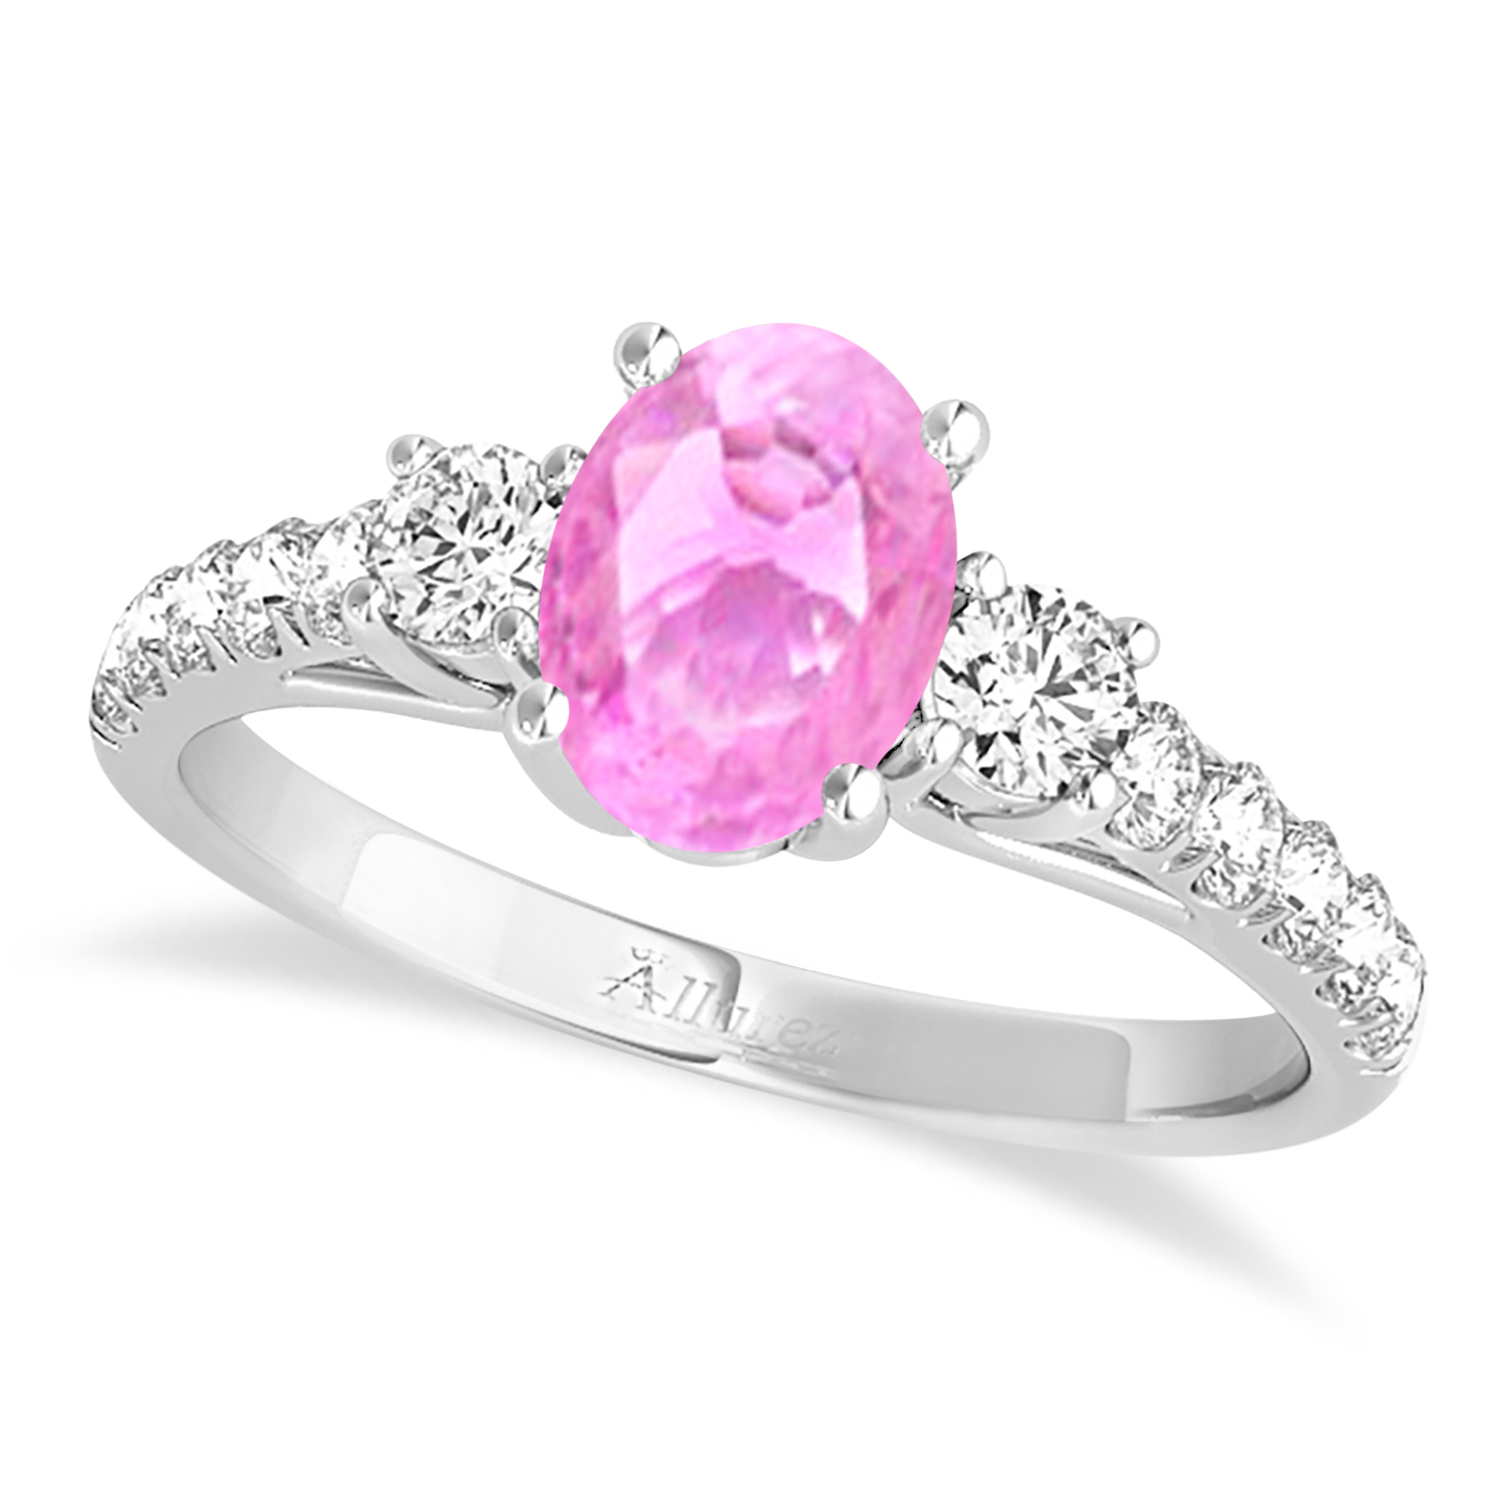 Oval Cut Pink Sapphire & Diamond Engagement Ring 18k White Gold (1.40ct)